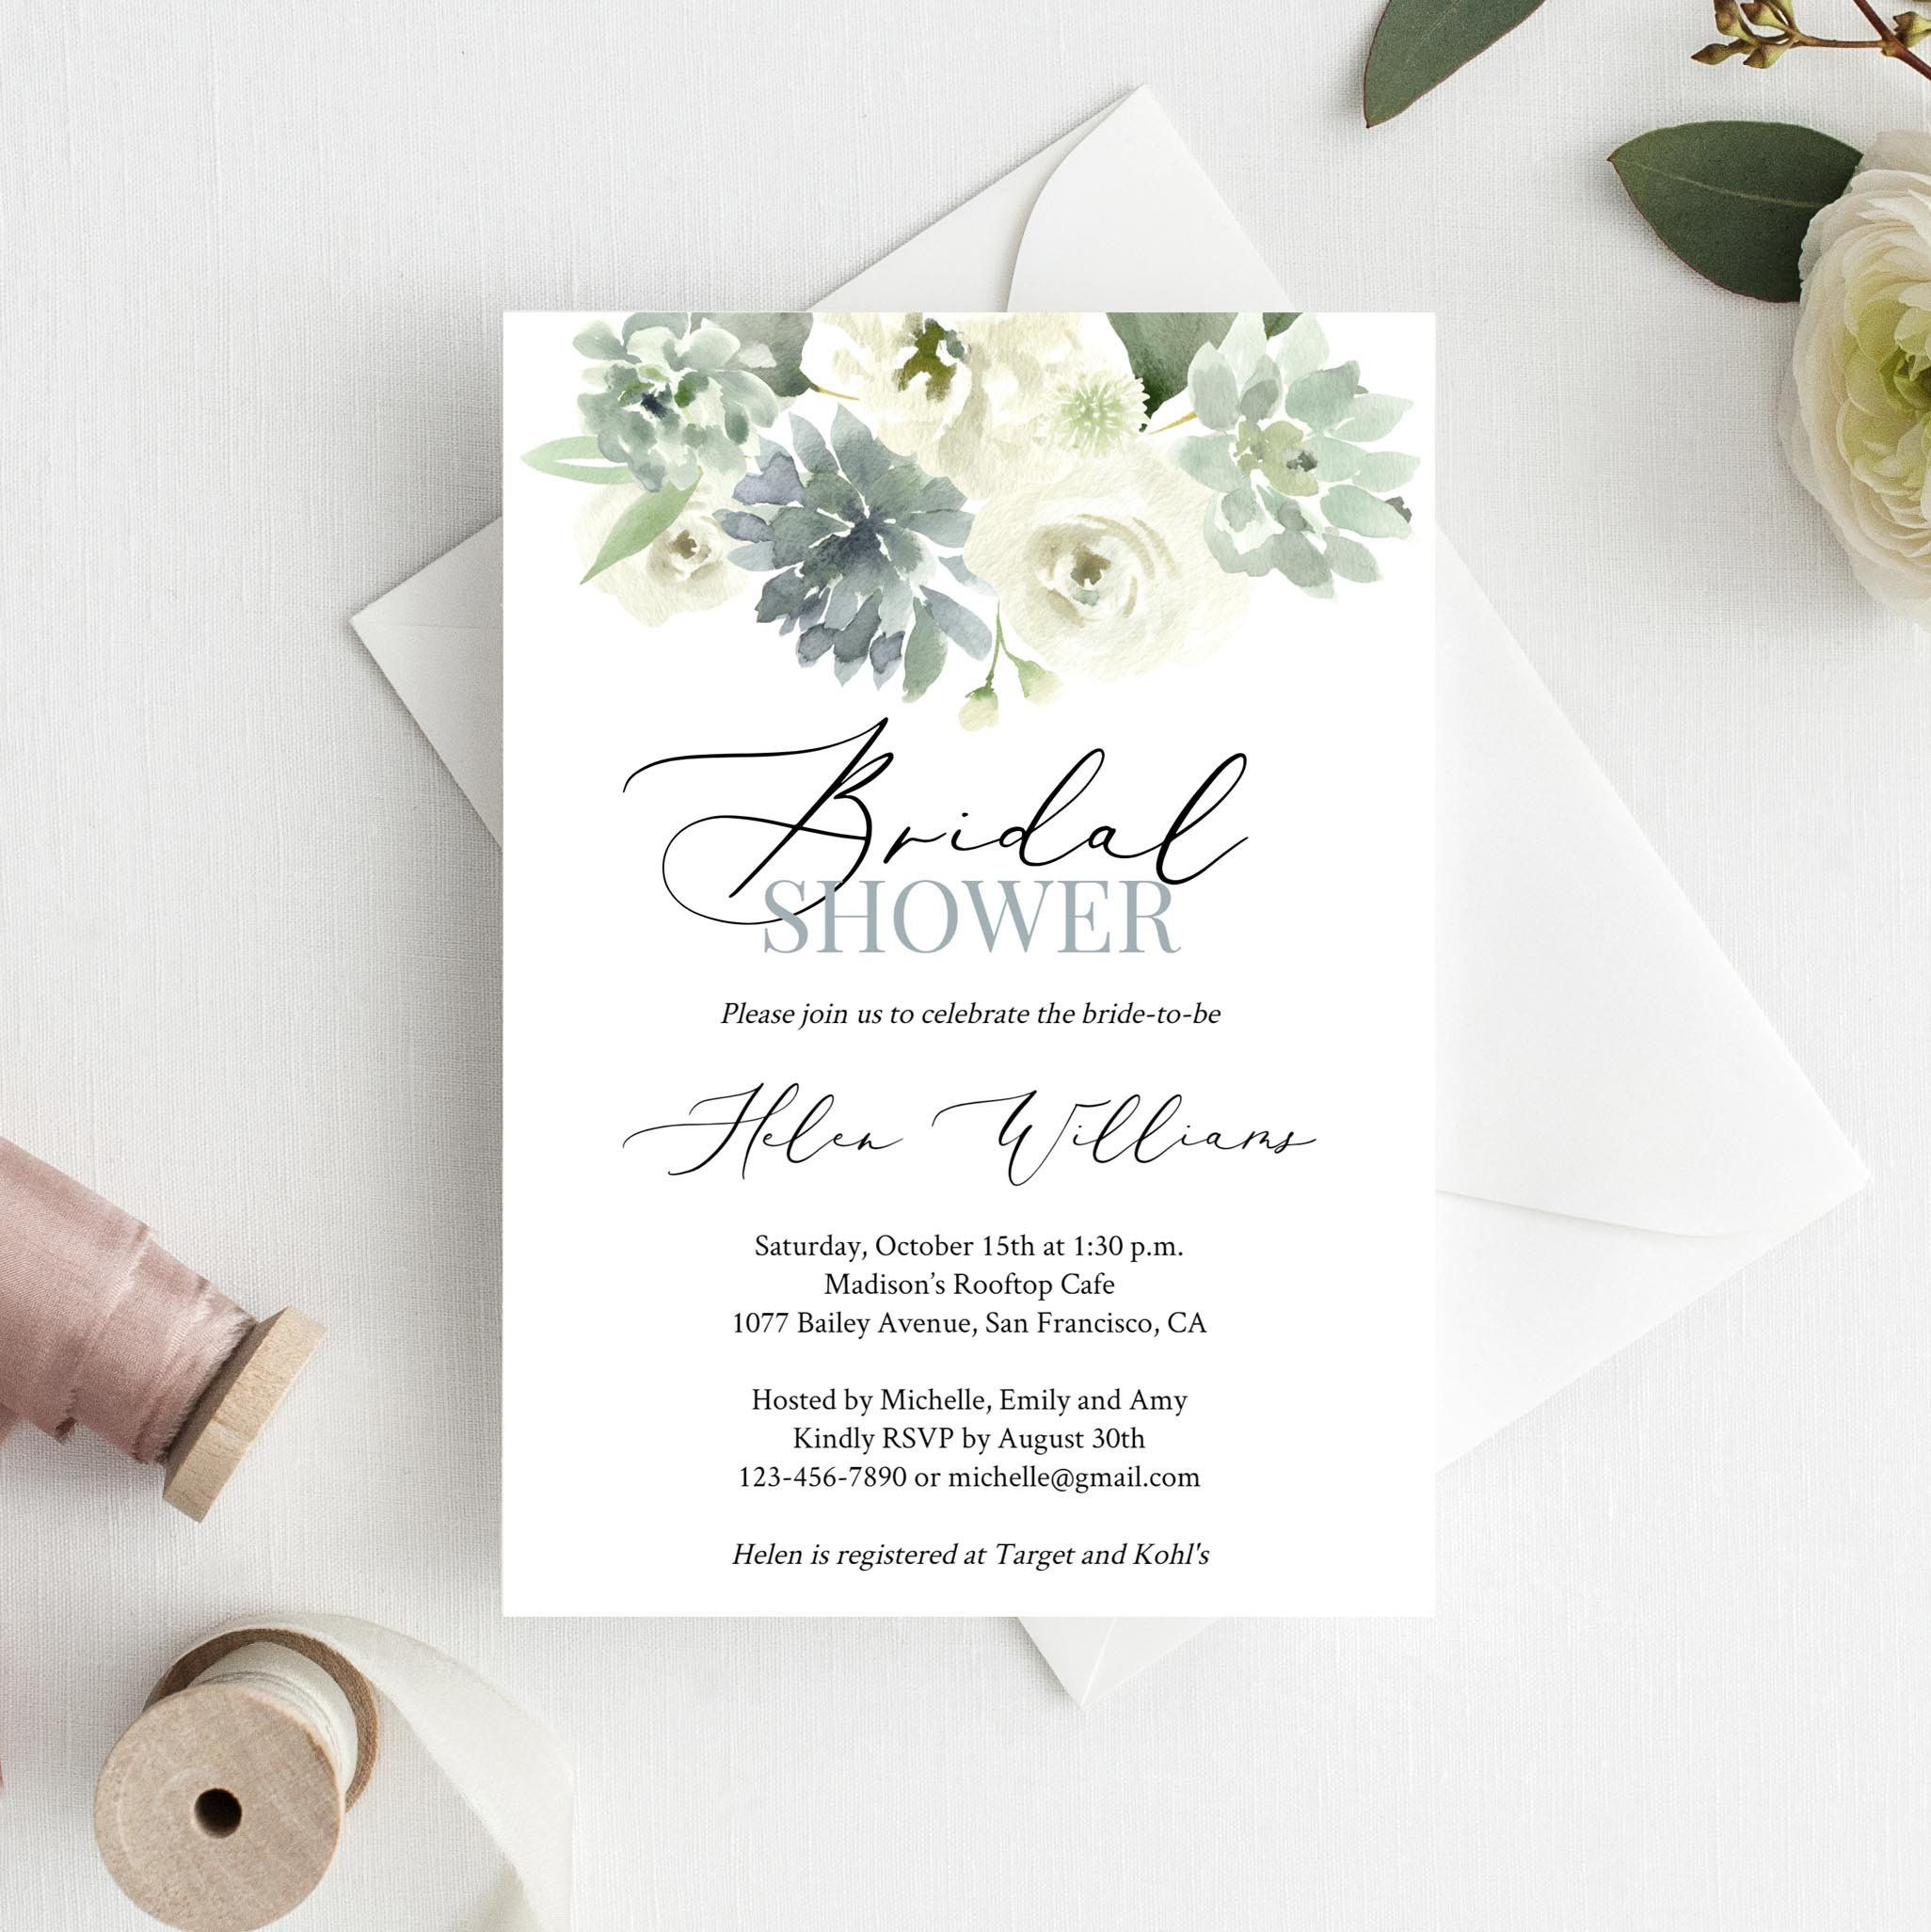 Featured Etsy Products Bridal Shower Ideas Themes Bridal Shower Diy Target Wedding Invitations Bridal Shower Invitations Templates